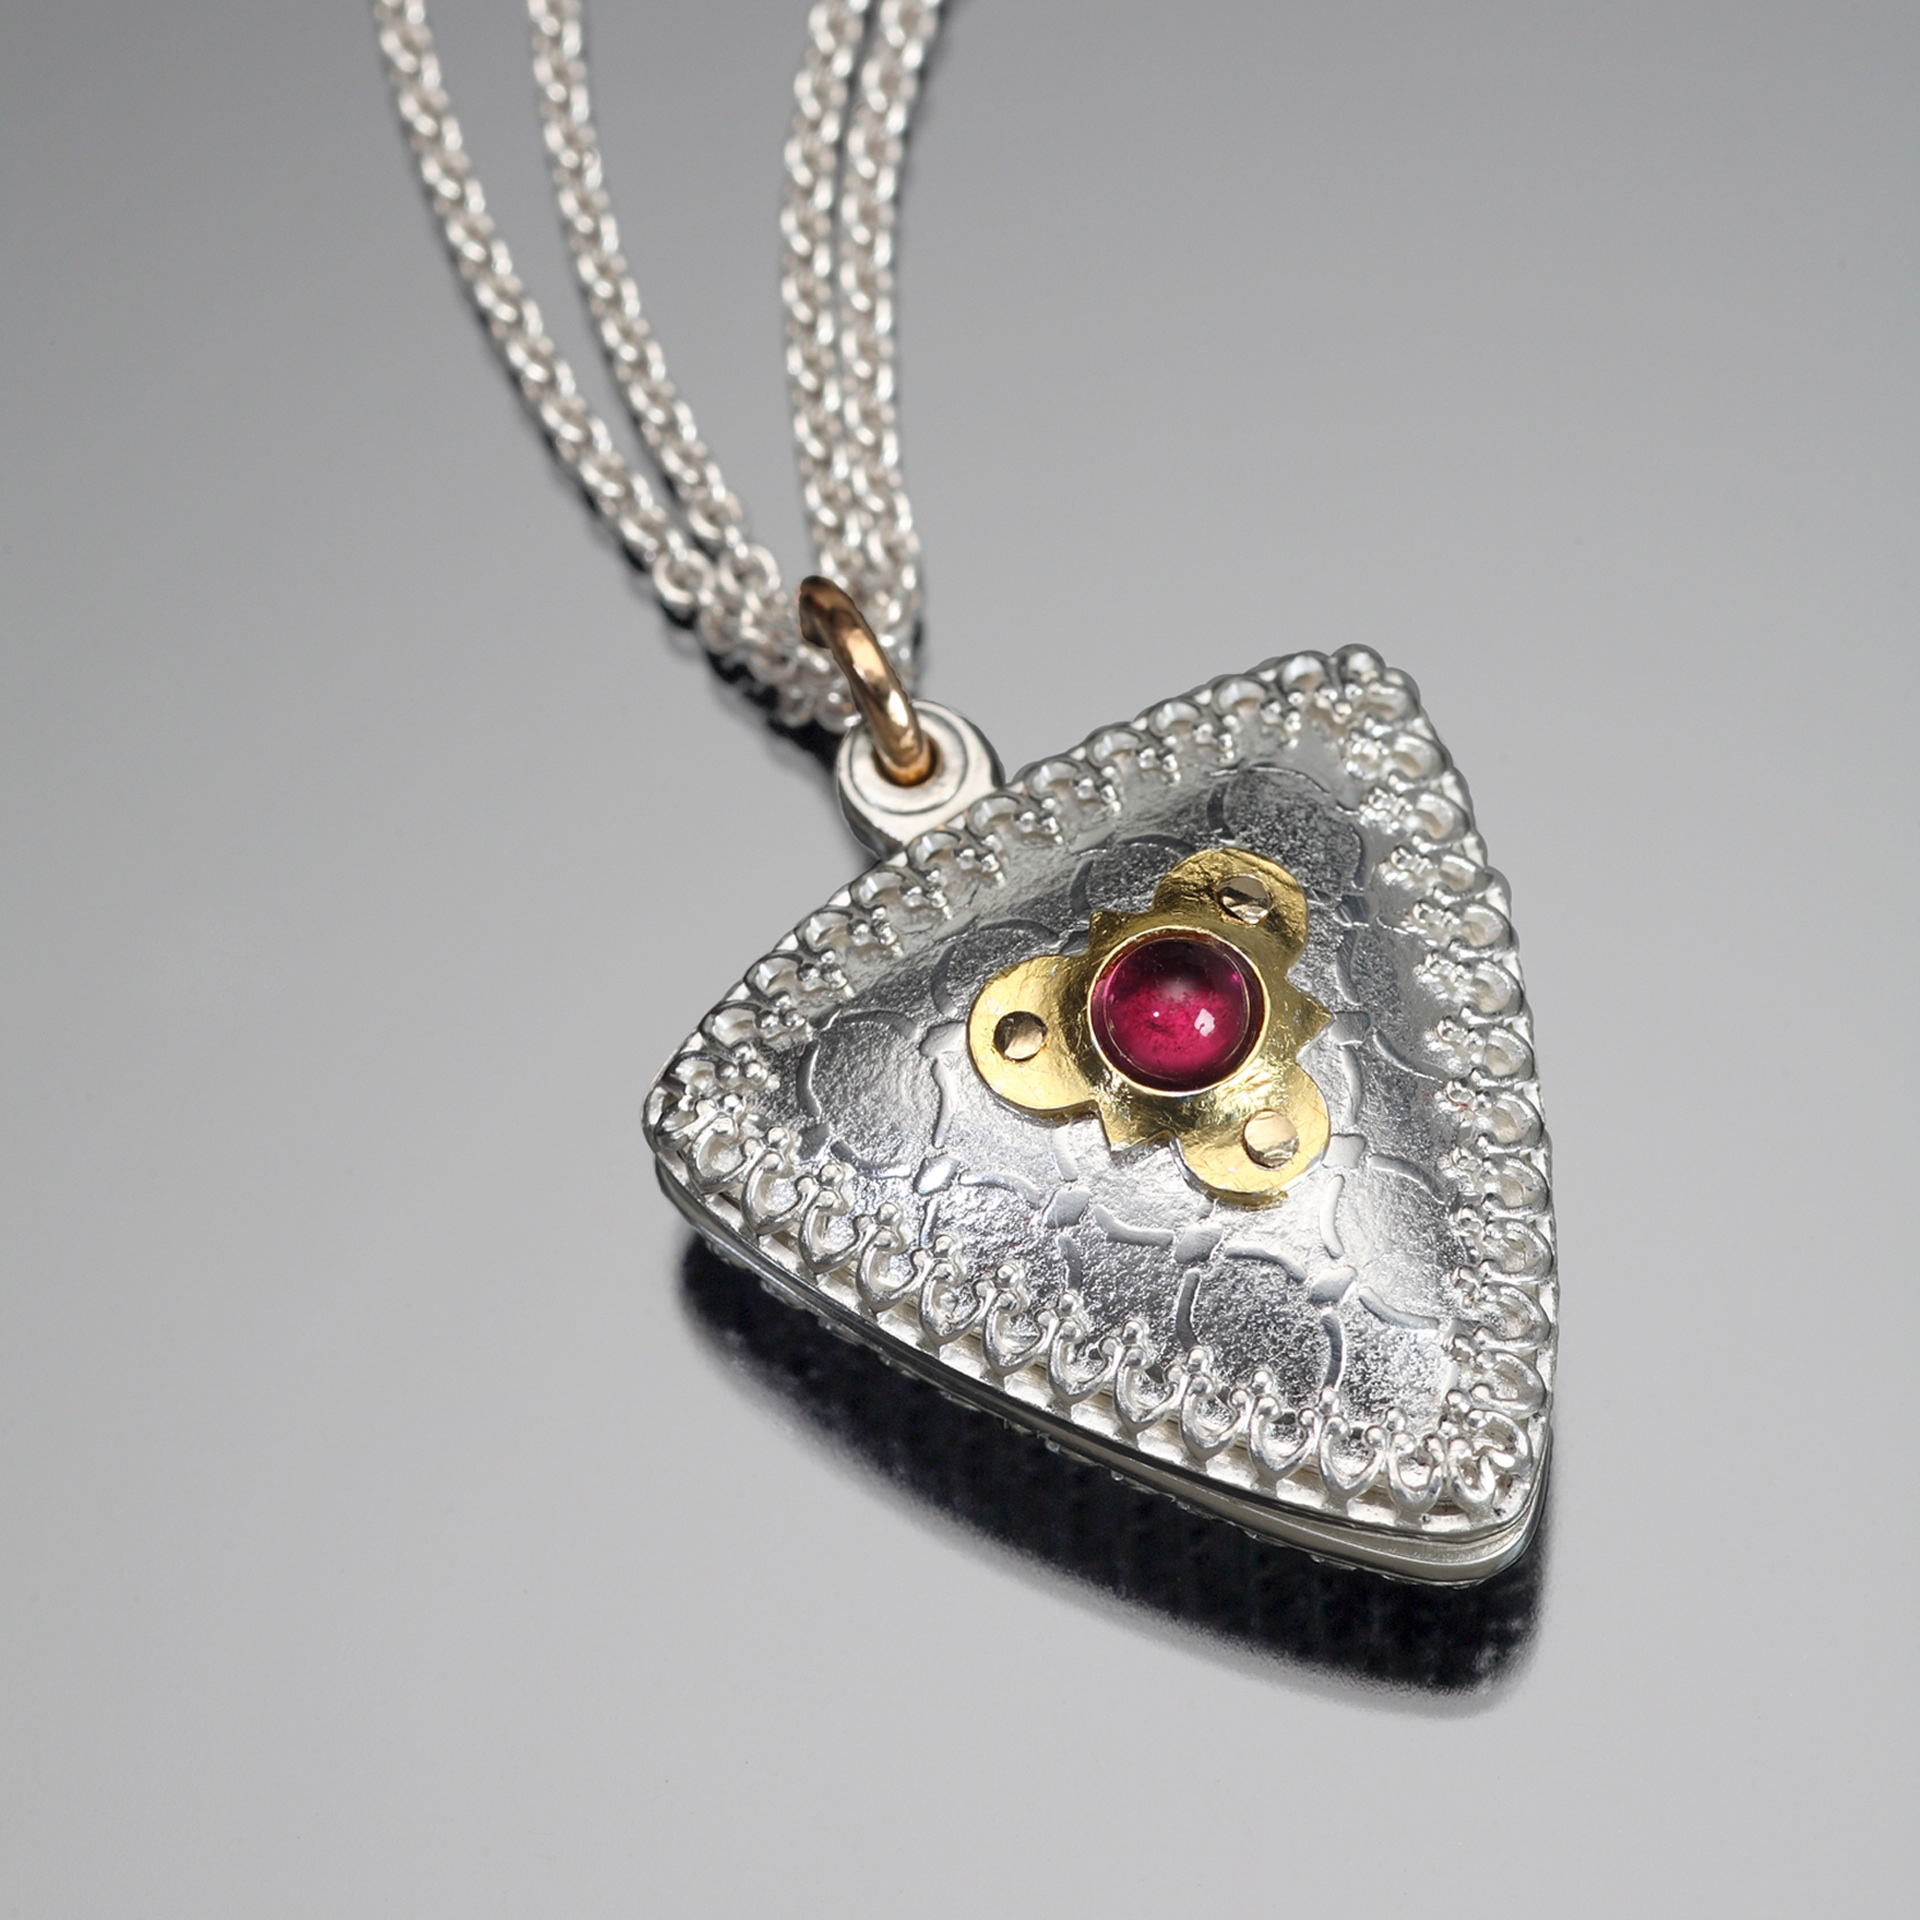 "'Swivel Locket' by Nanz Aalund. This locket will be on display at Facèré Jewelry Art Gallery as part of their ""So Fine"" exhibition until May 12, 2015. Photo used with permission."